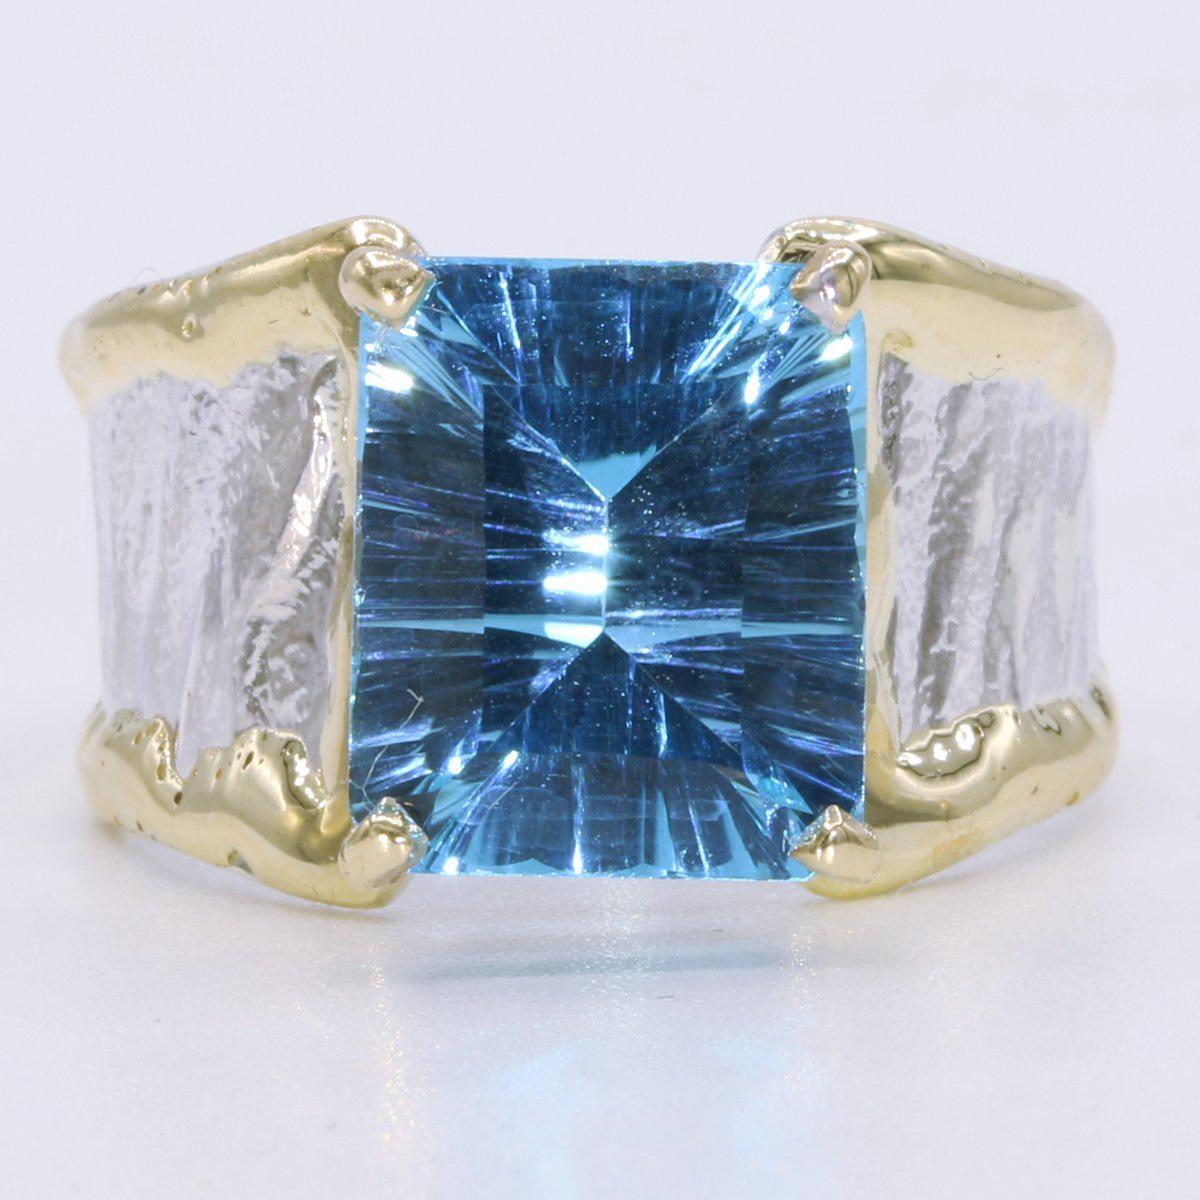 14K Gold & Crystalline Silver Blue Topaz Ring - 34912-Fusion Designs-Renee Taylor Gallery